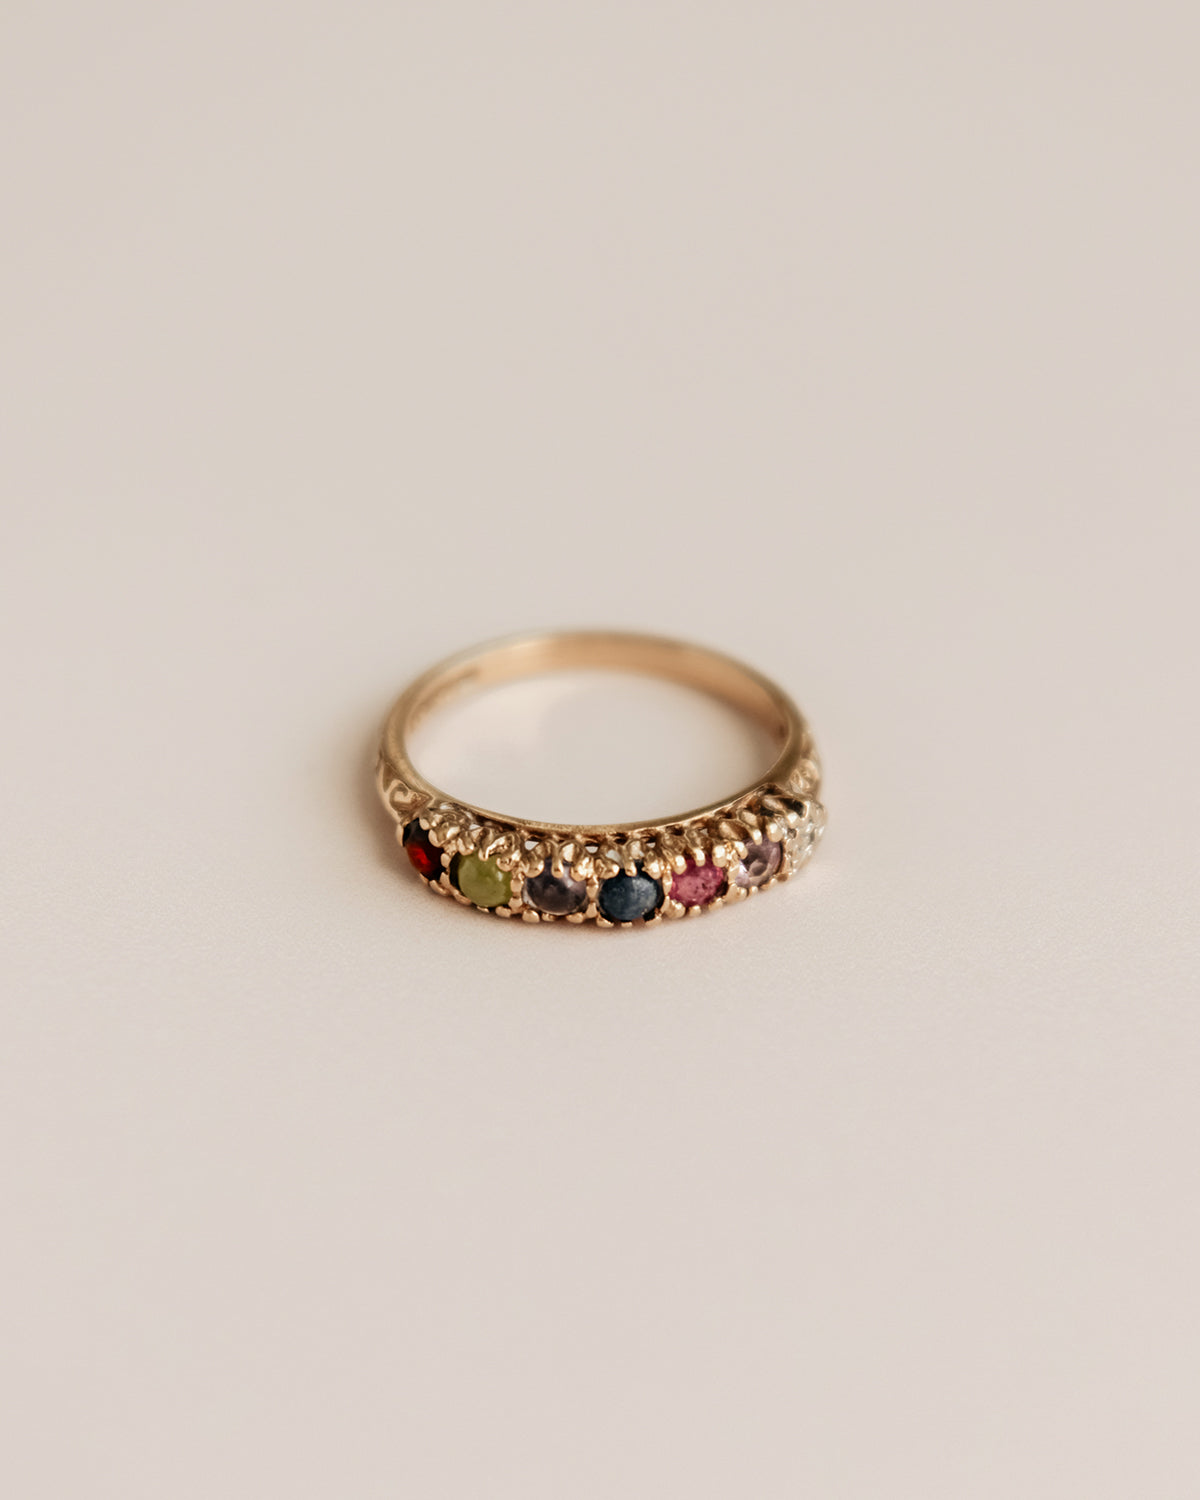 Image of Darling Exclusive Vintage 9ct Gold Ring